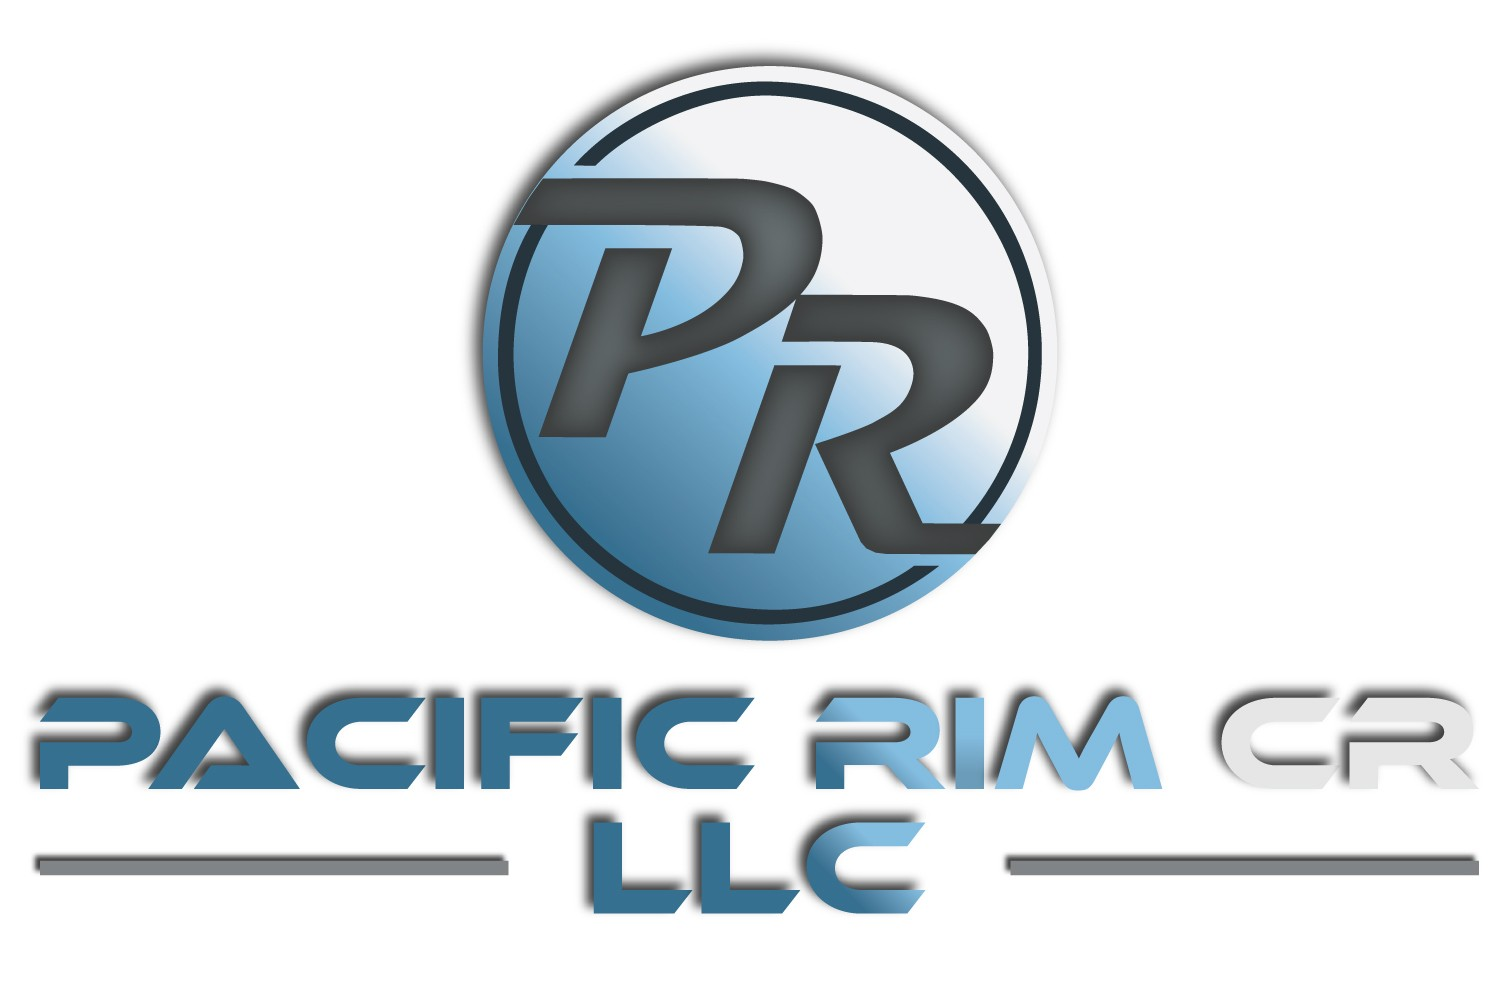 pacific rim cr llc